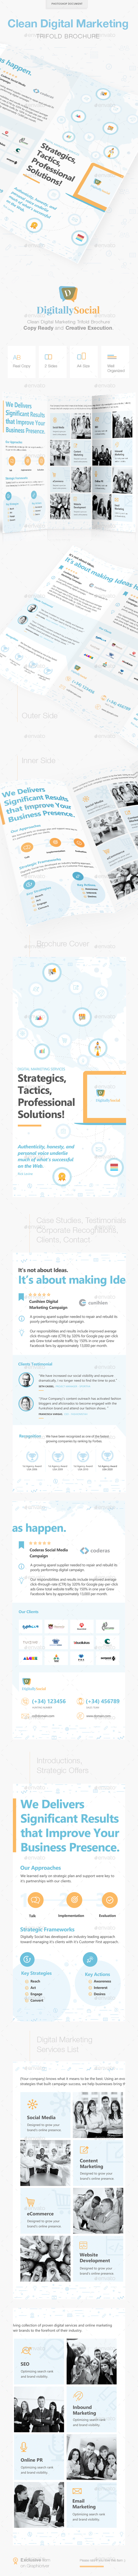 Clean Digital Marketing Trifold Brochure - Corporate Brochures